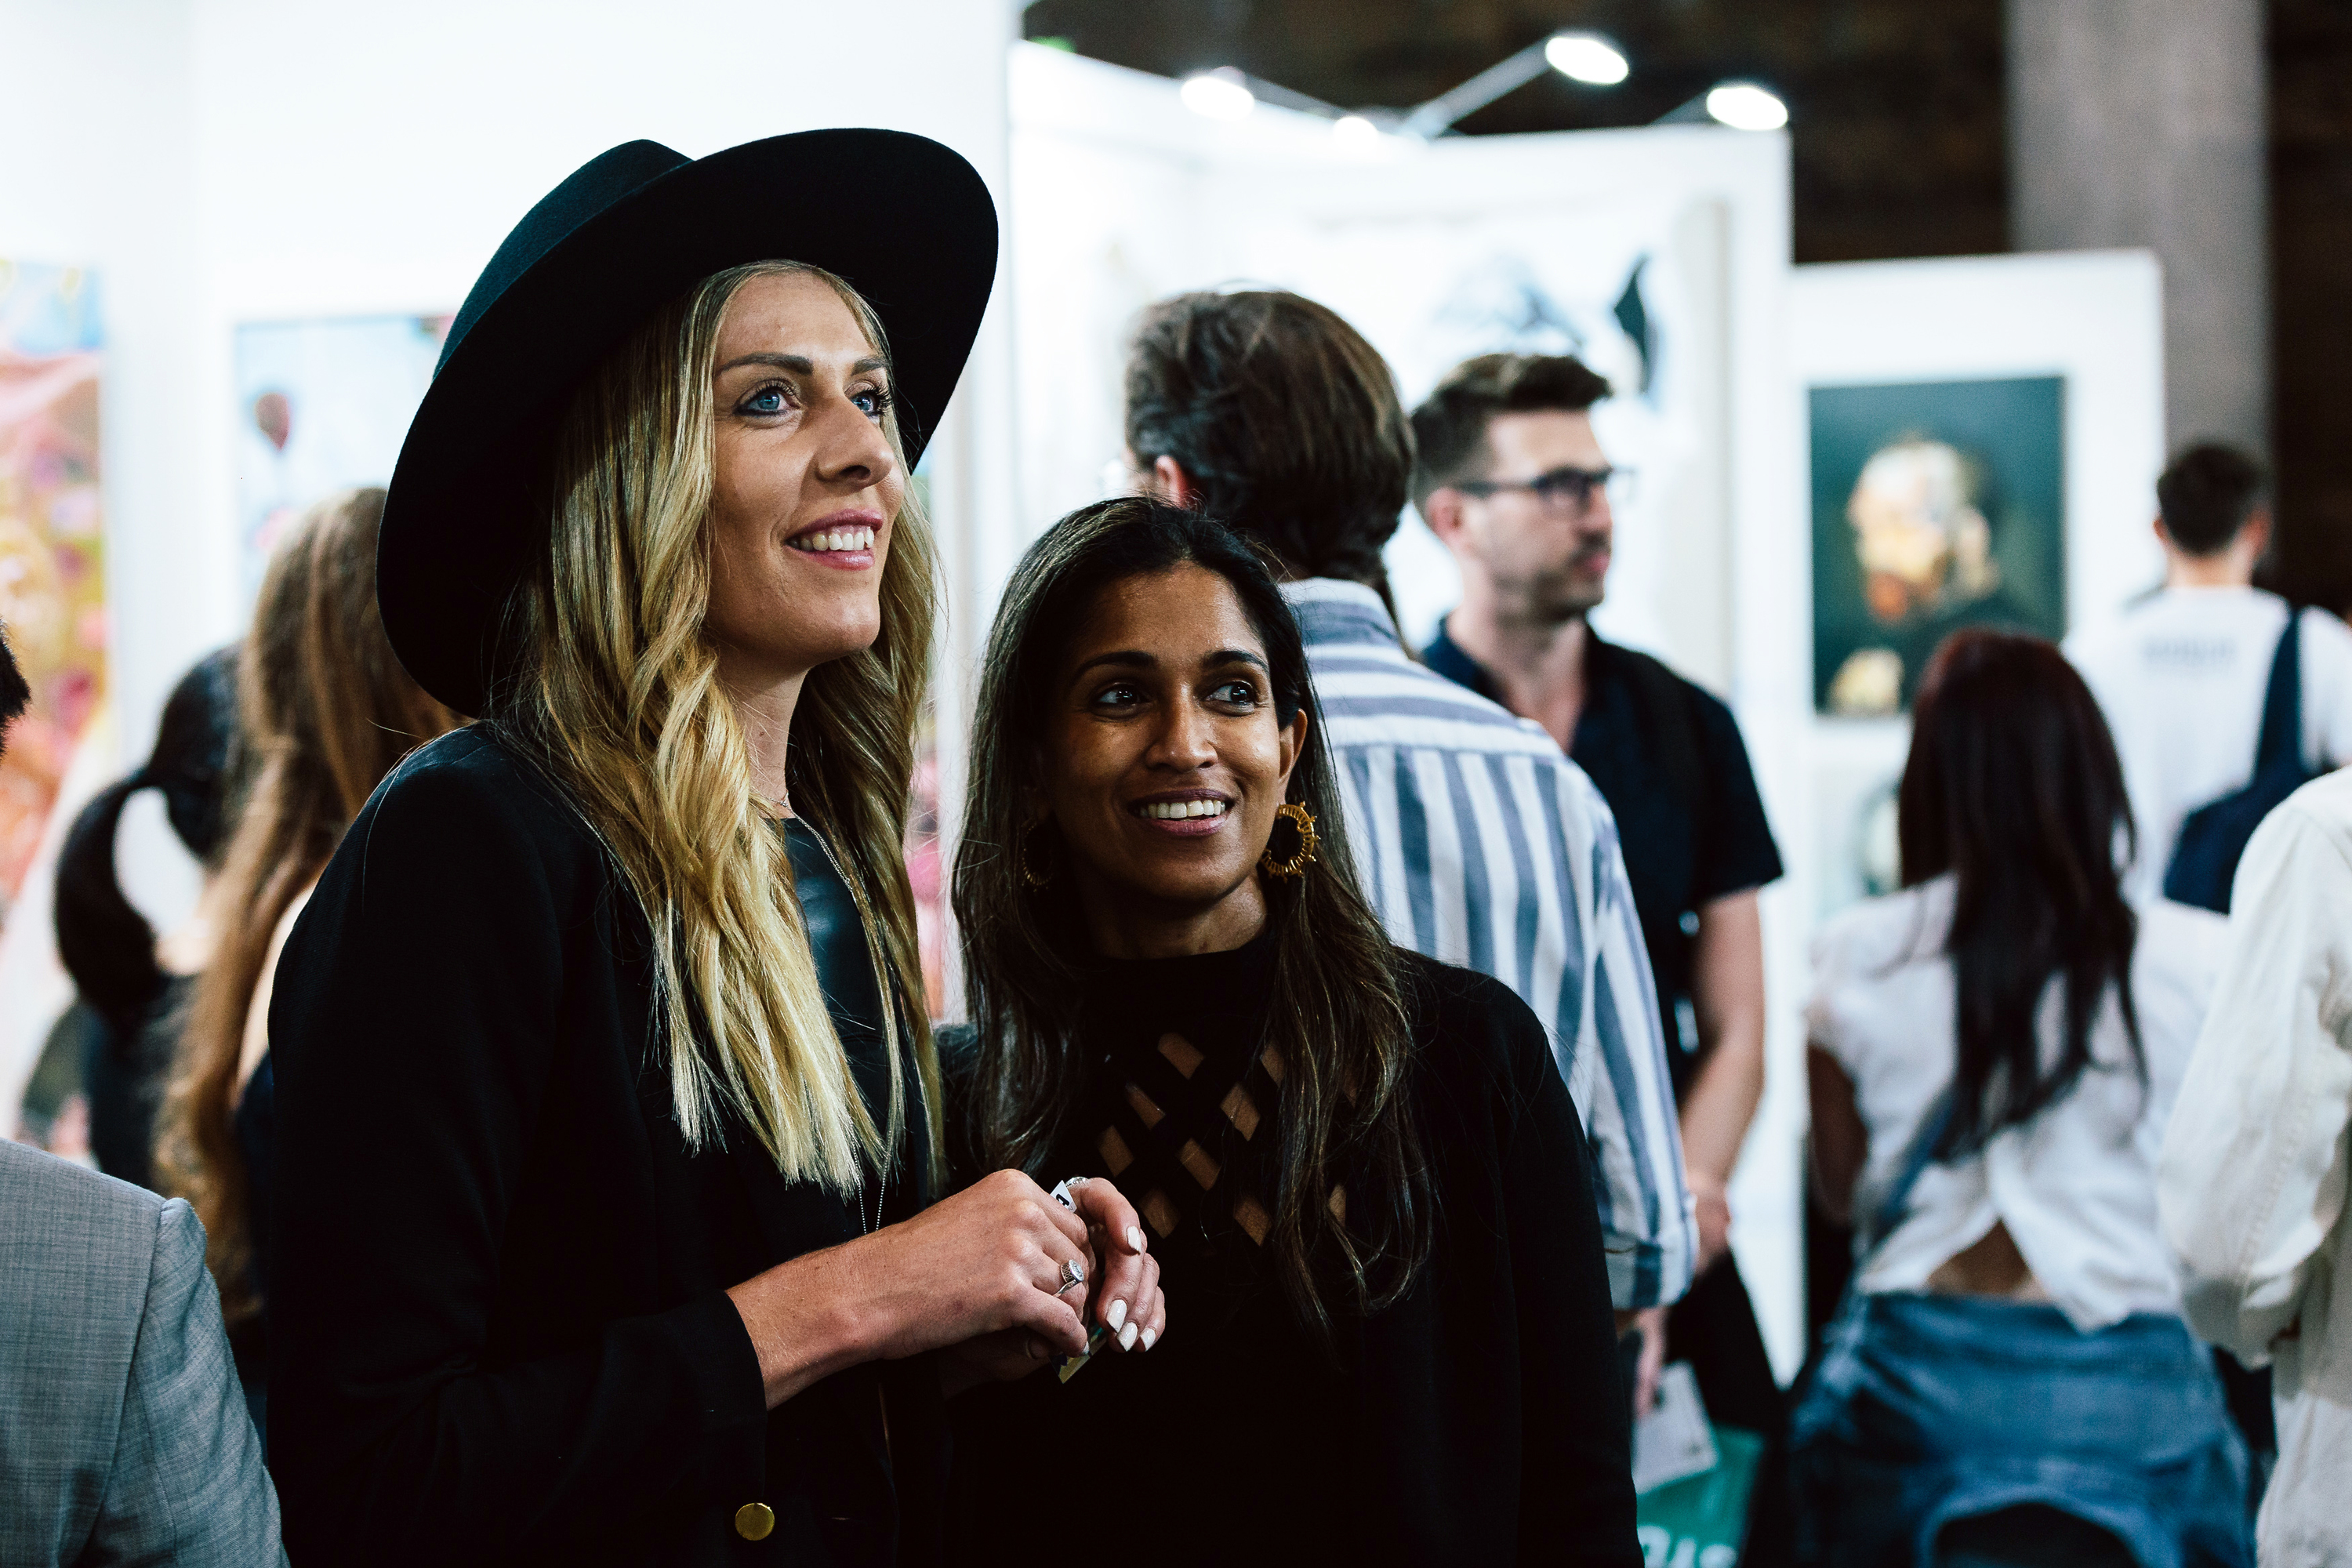 Two people in elaborate black outfits smile into the middle distance. They are looking at an artwork out of frame. There is a crowd browsing art on partition walls in the background.